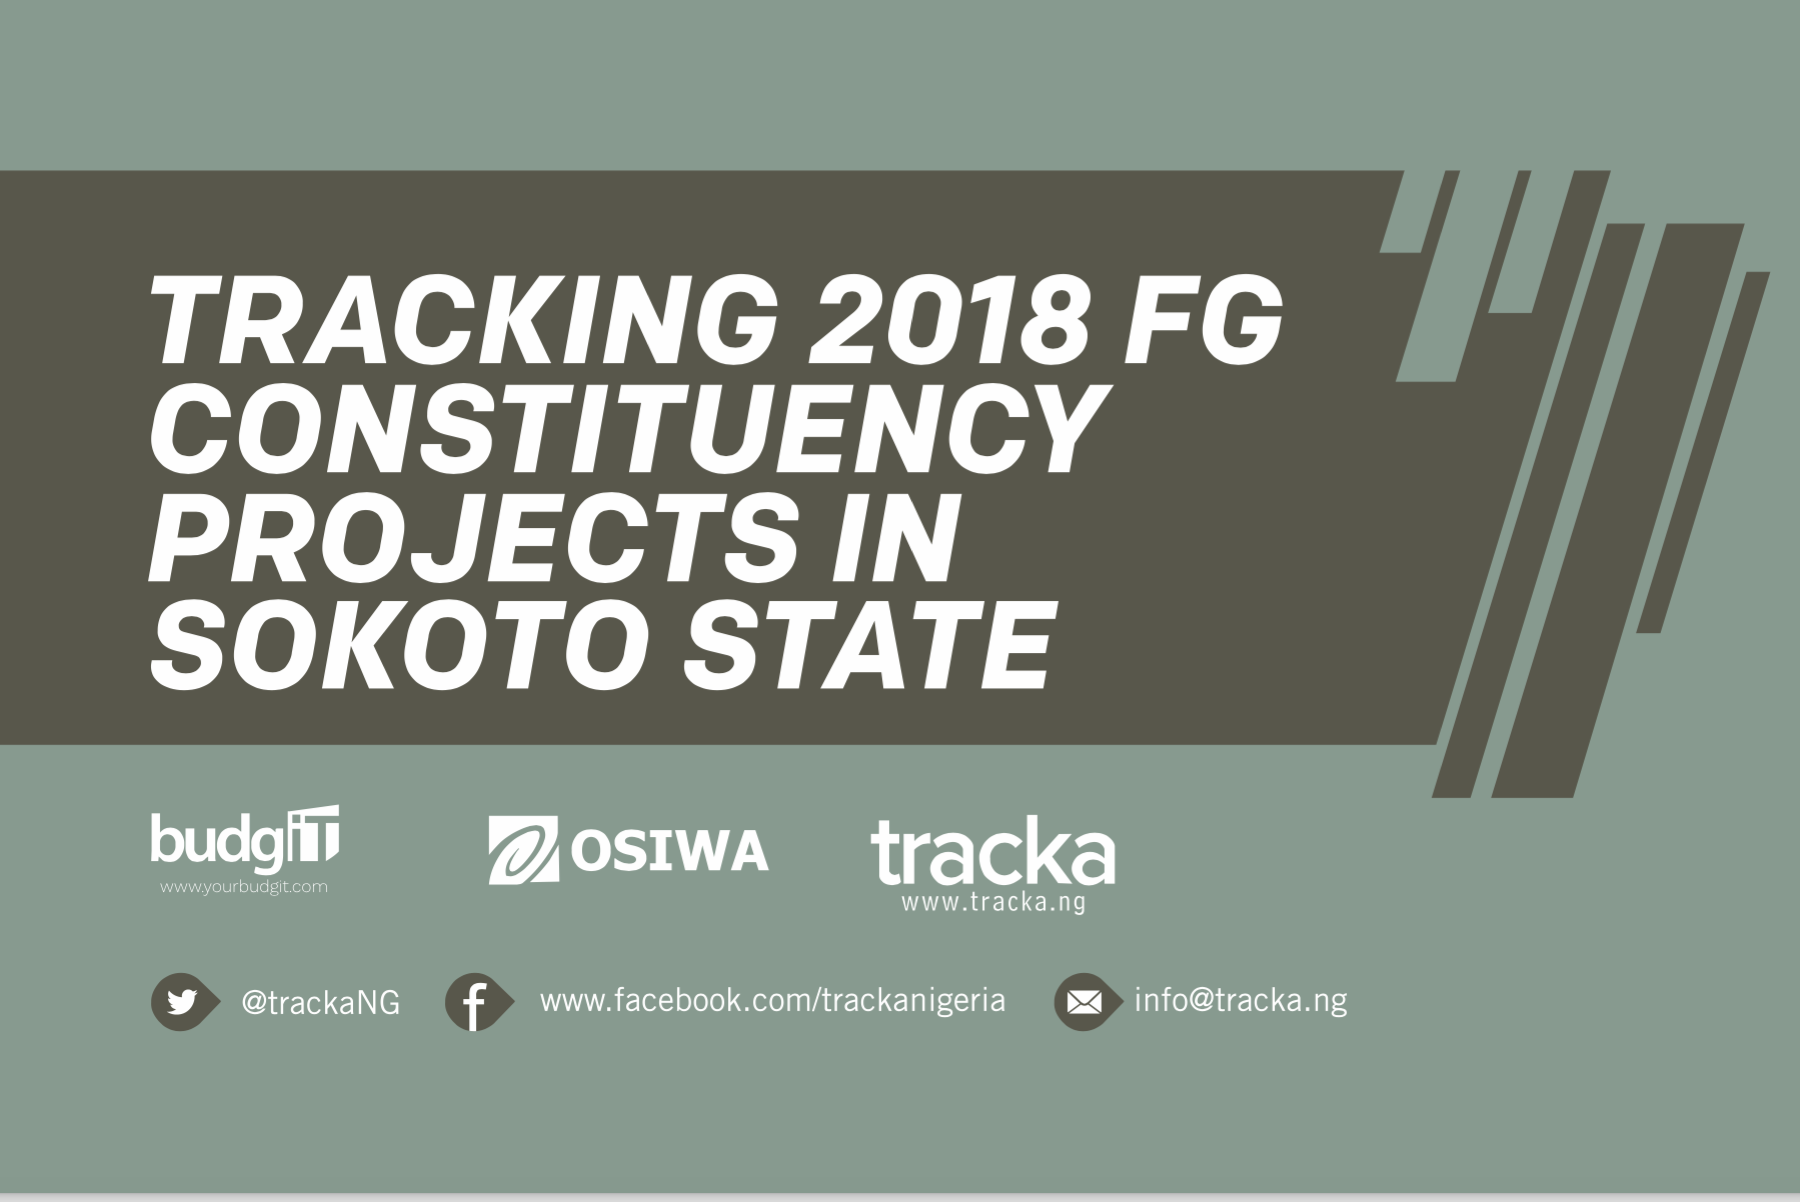 2018 FG Constituency Projects in Sokoto State